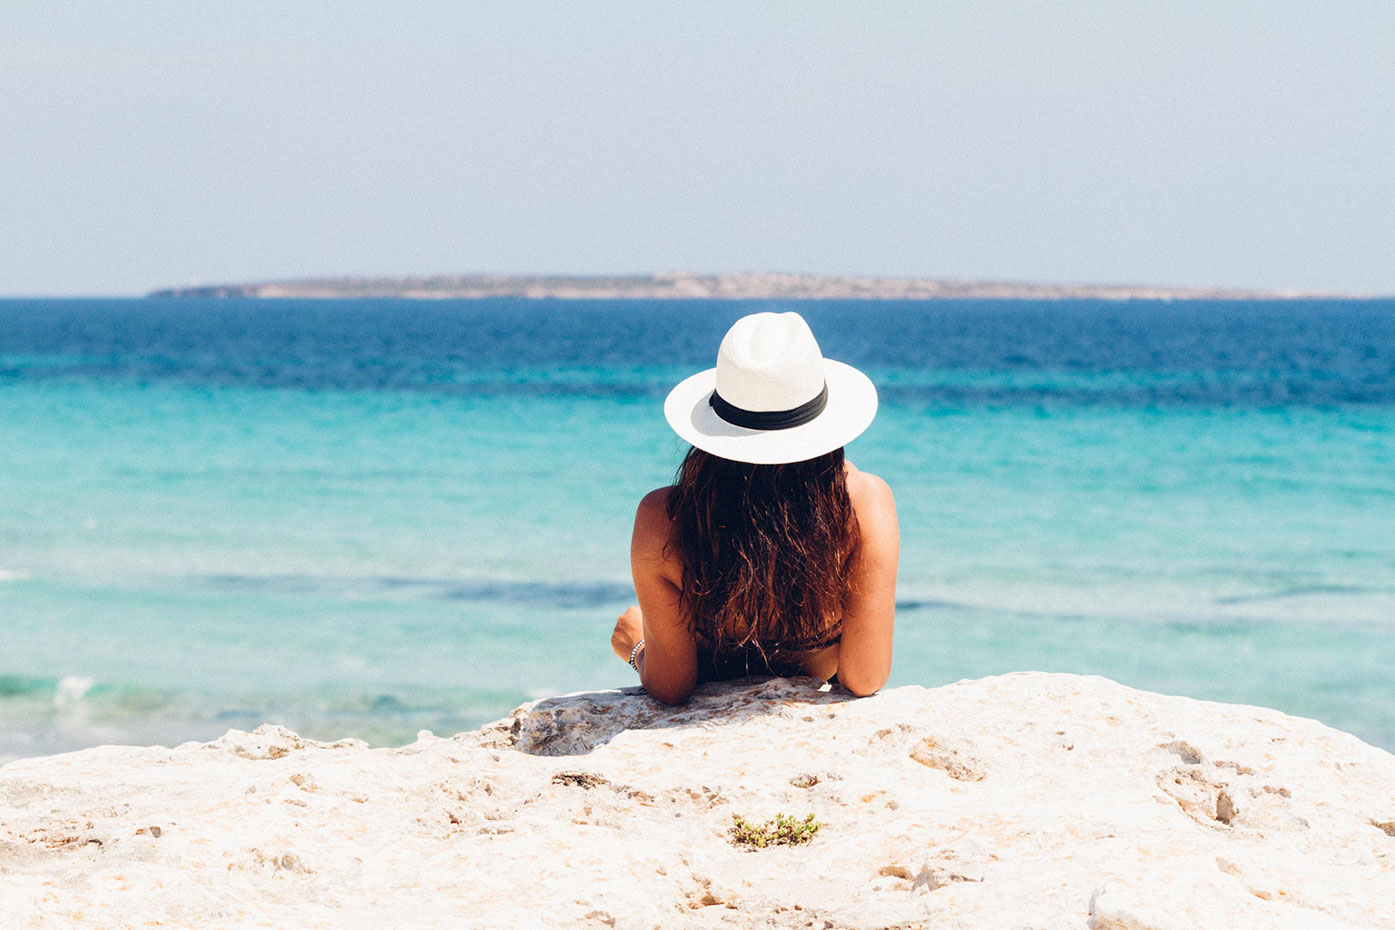 Skin Cancer – What You Need to Know